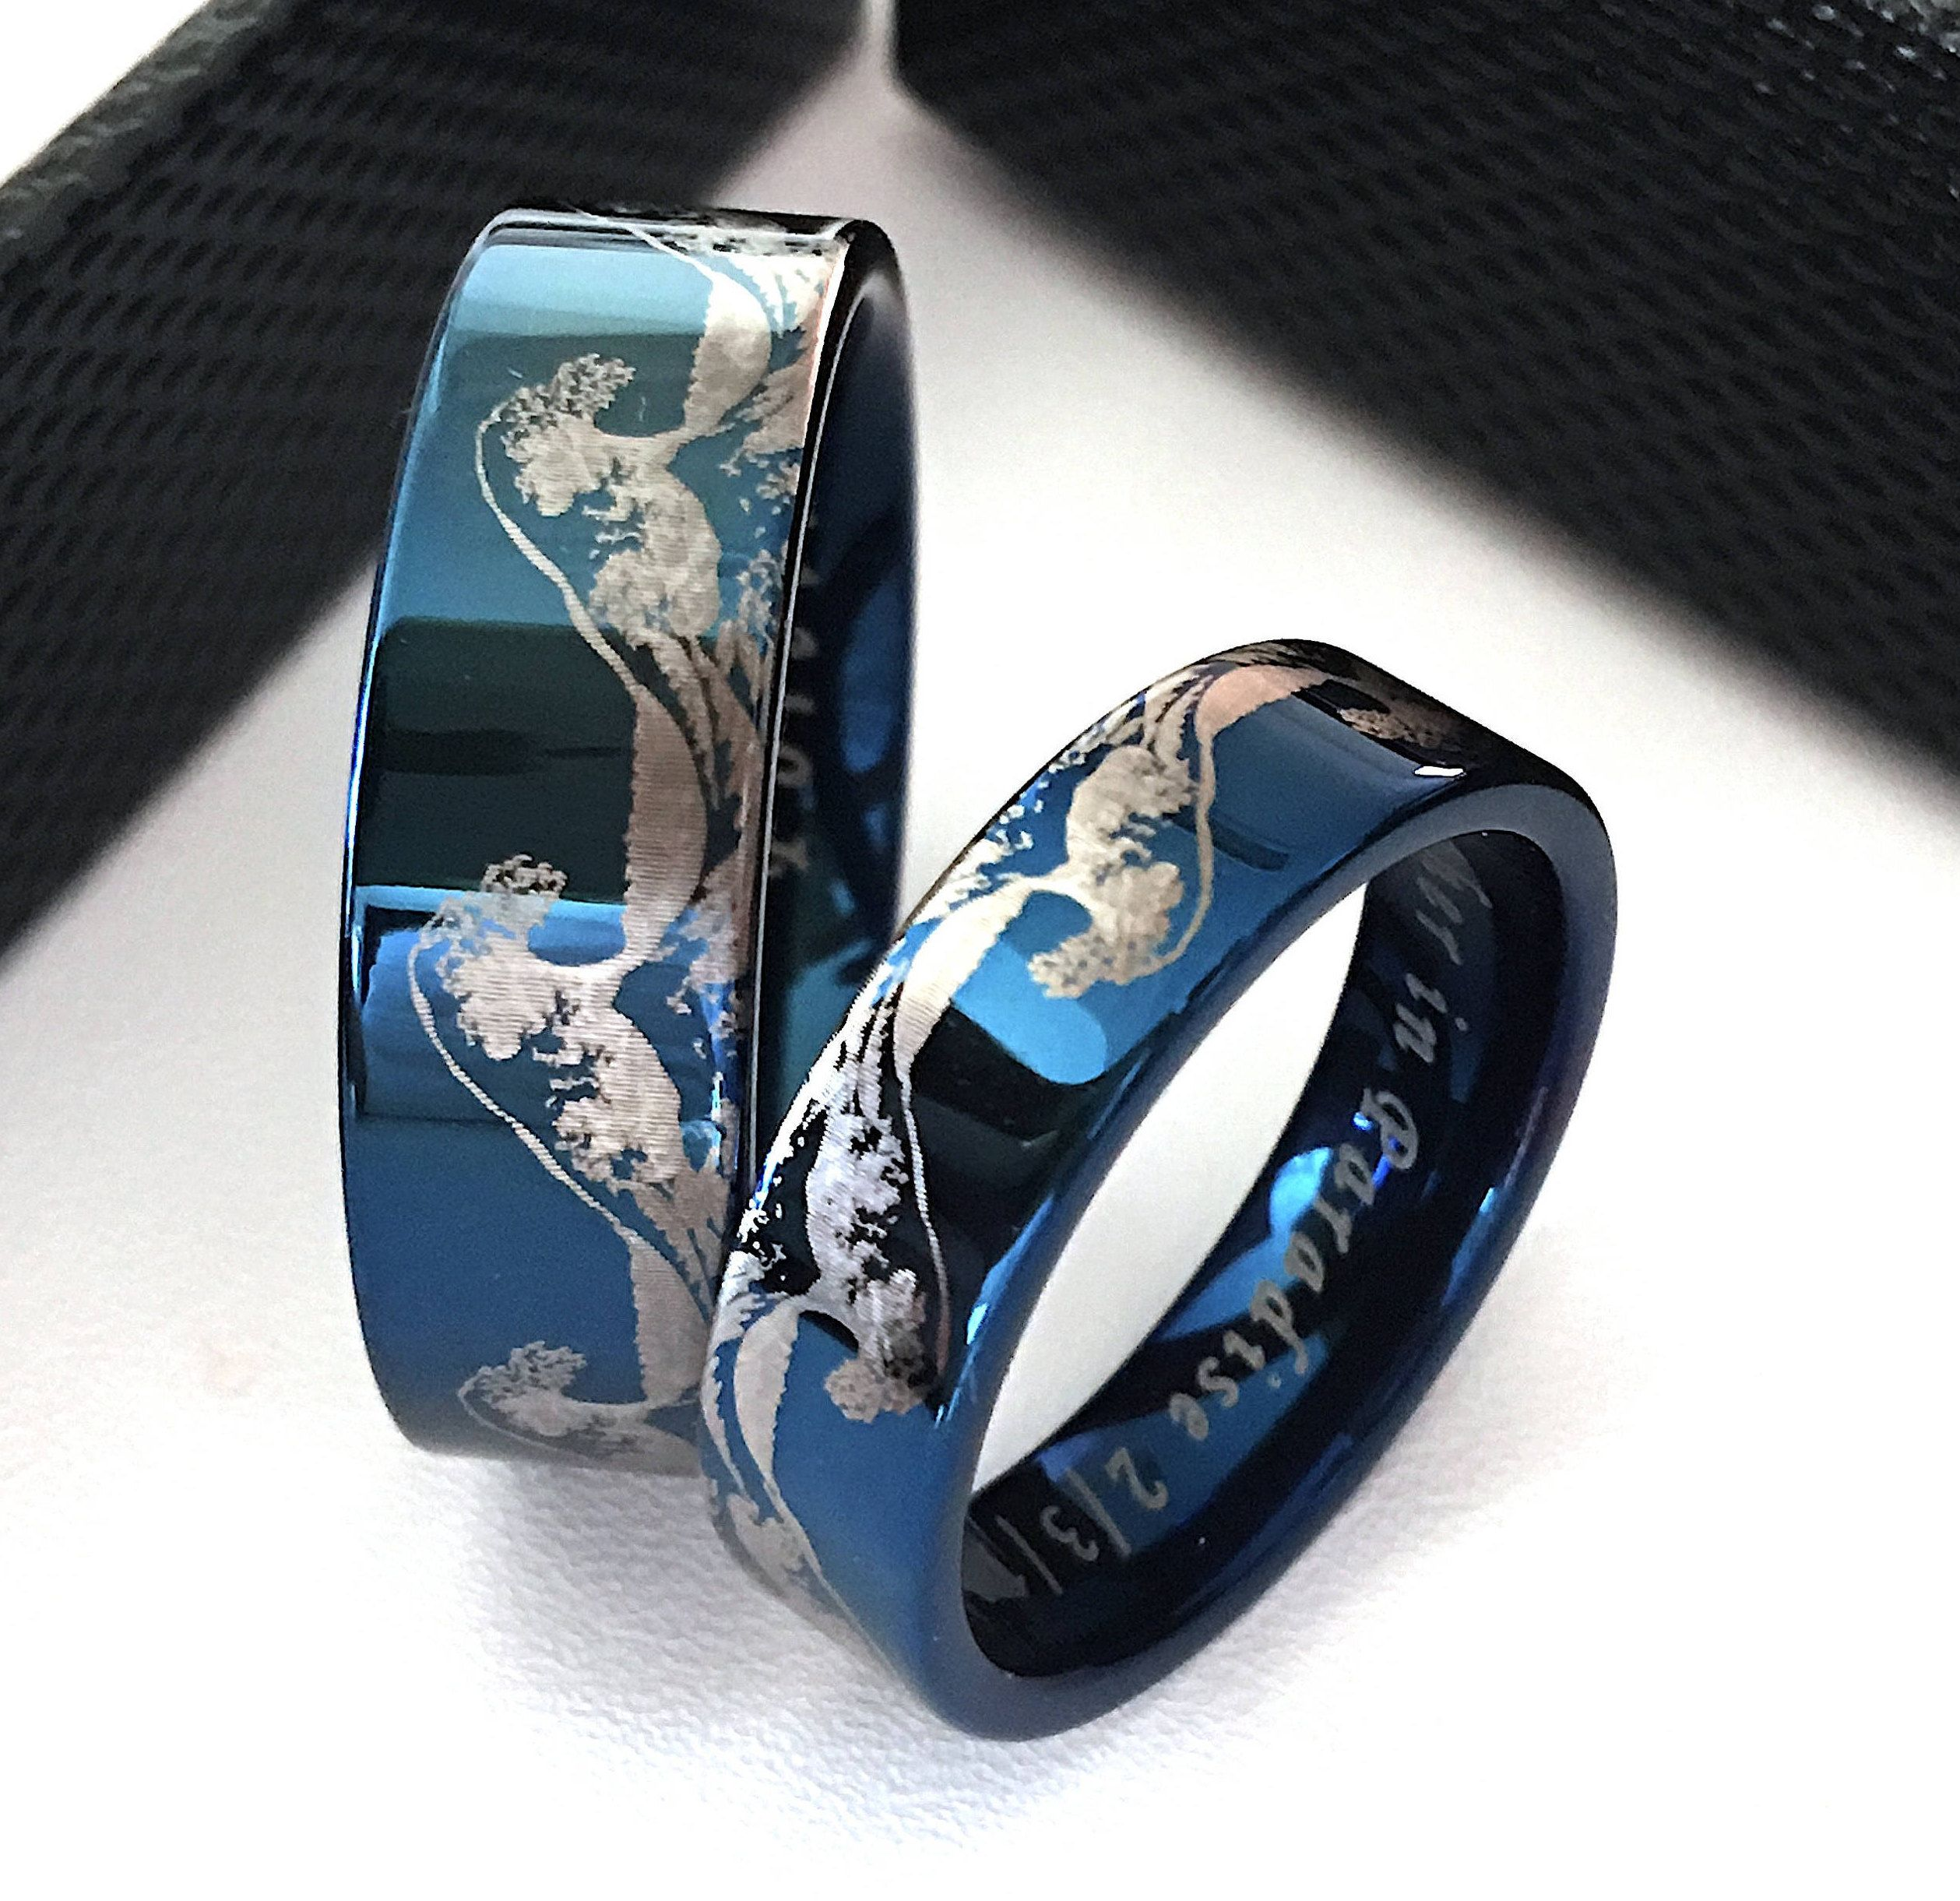 bands ring elegant jewelers tungsten frederick wide abalone and shell inblue awesome mother s wedding of pearl goldman mullen men rings